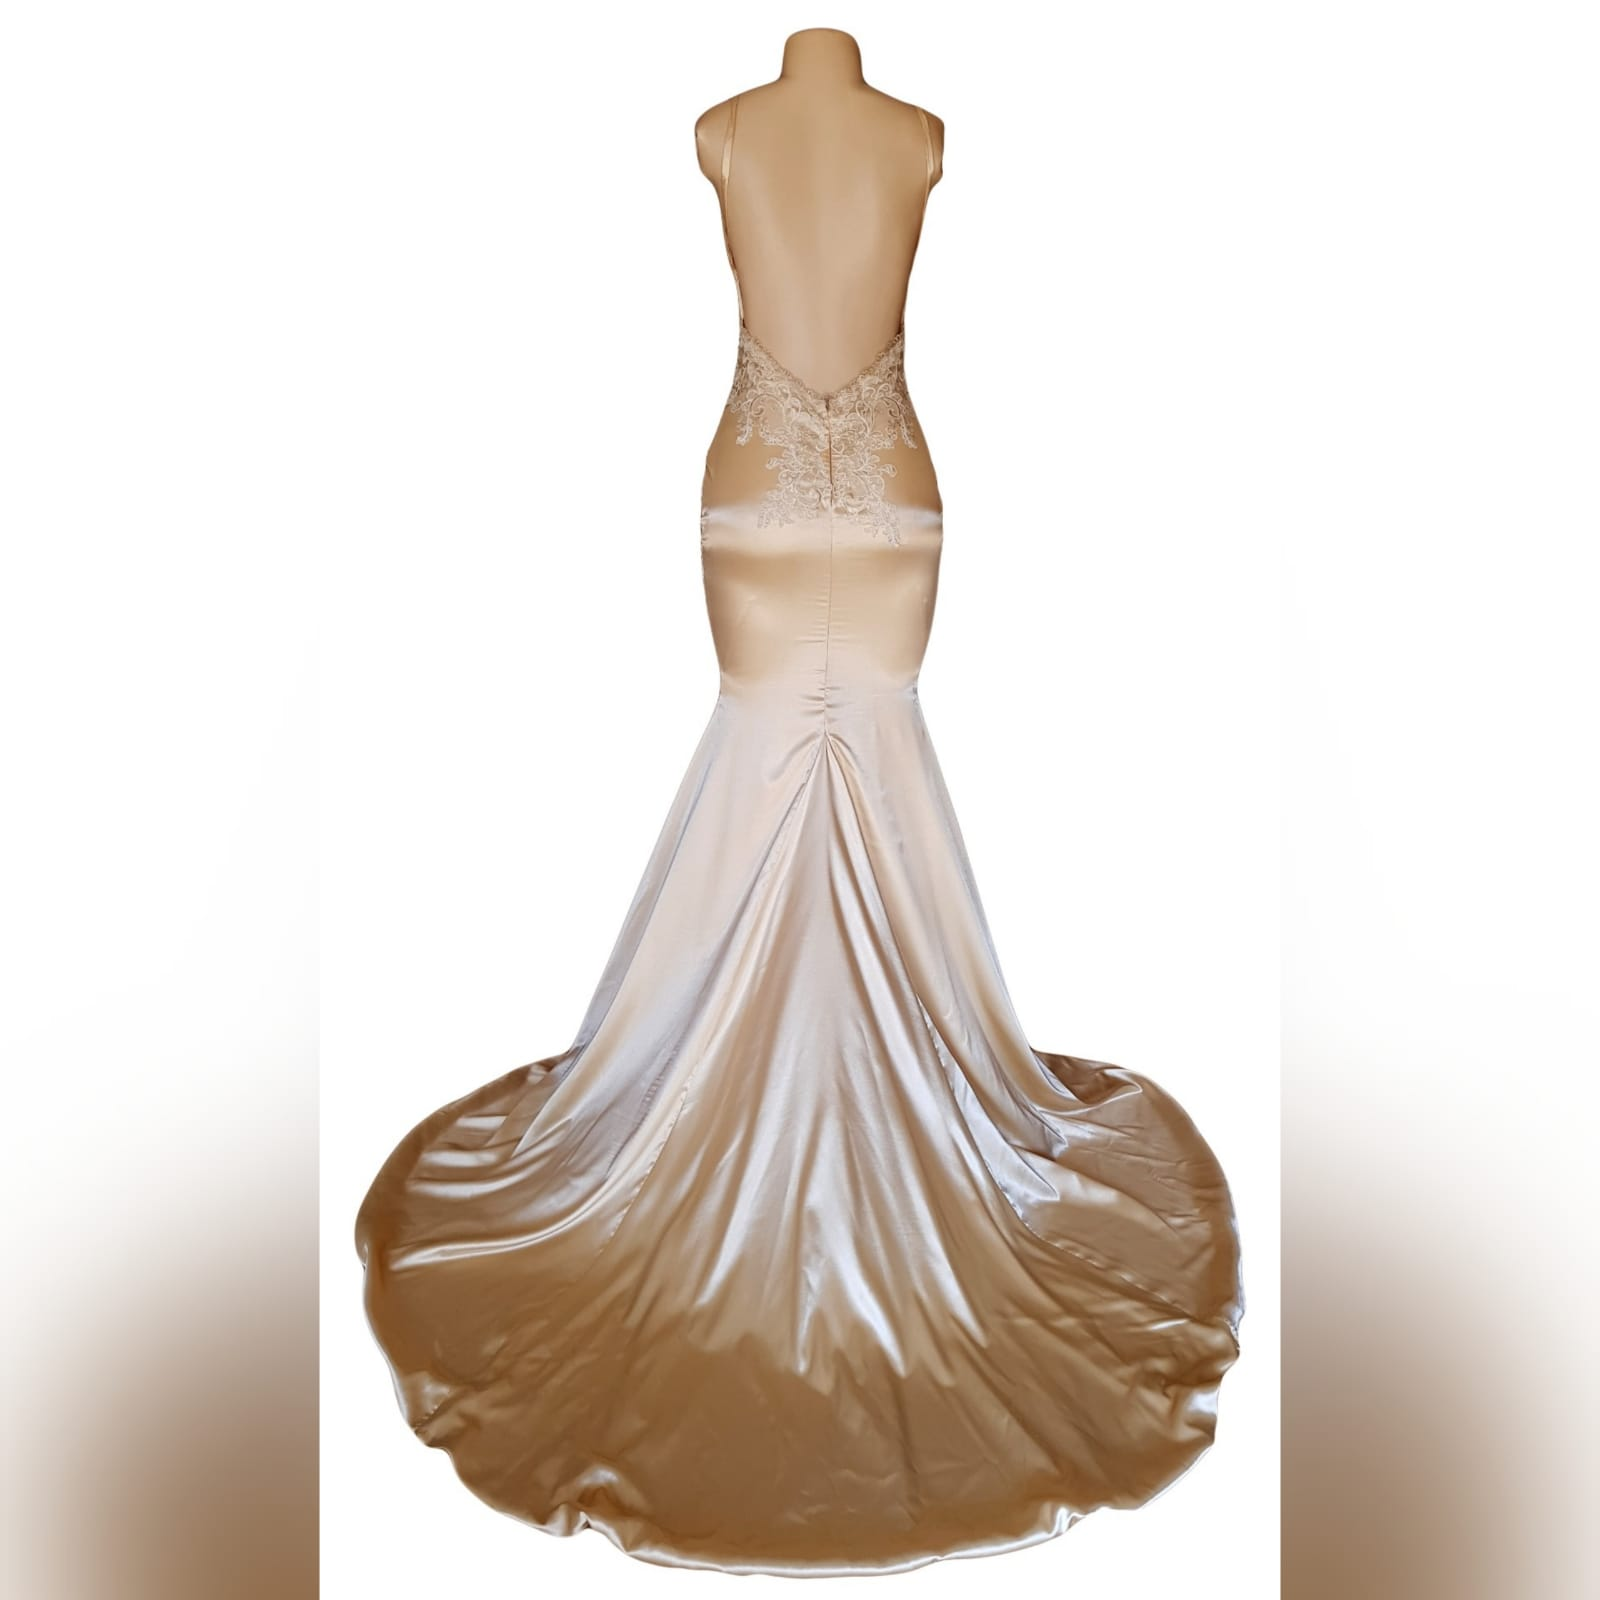 Gold satin soft mermaid matric farewell dress 5 gold satin soft mermaid matric farewell dress with a v neckline, a naked back and long train. Bodice hips and back detailed with lace.